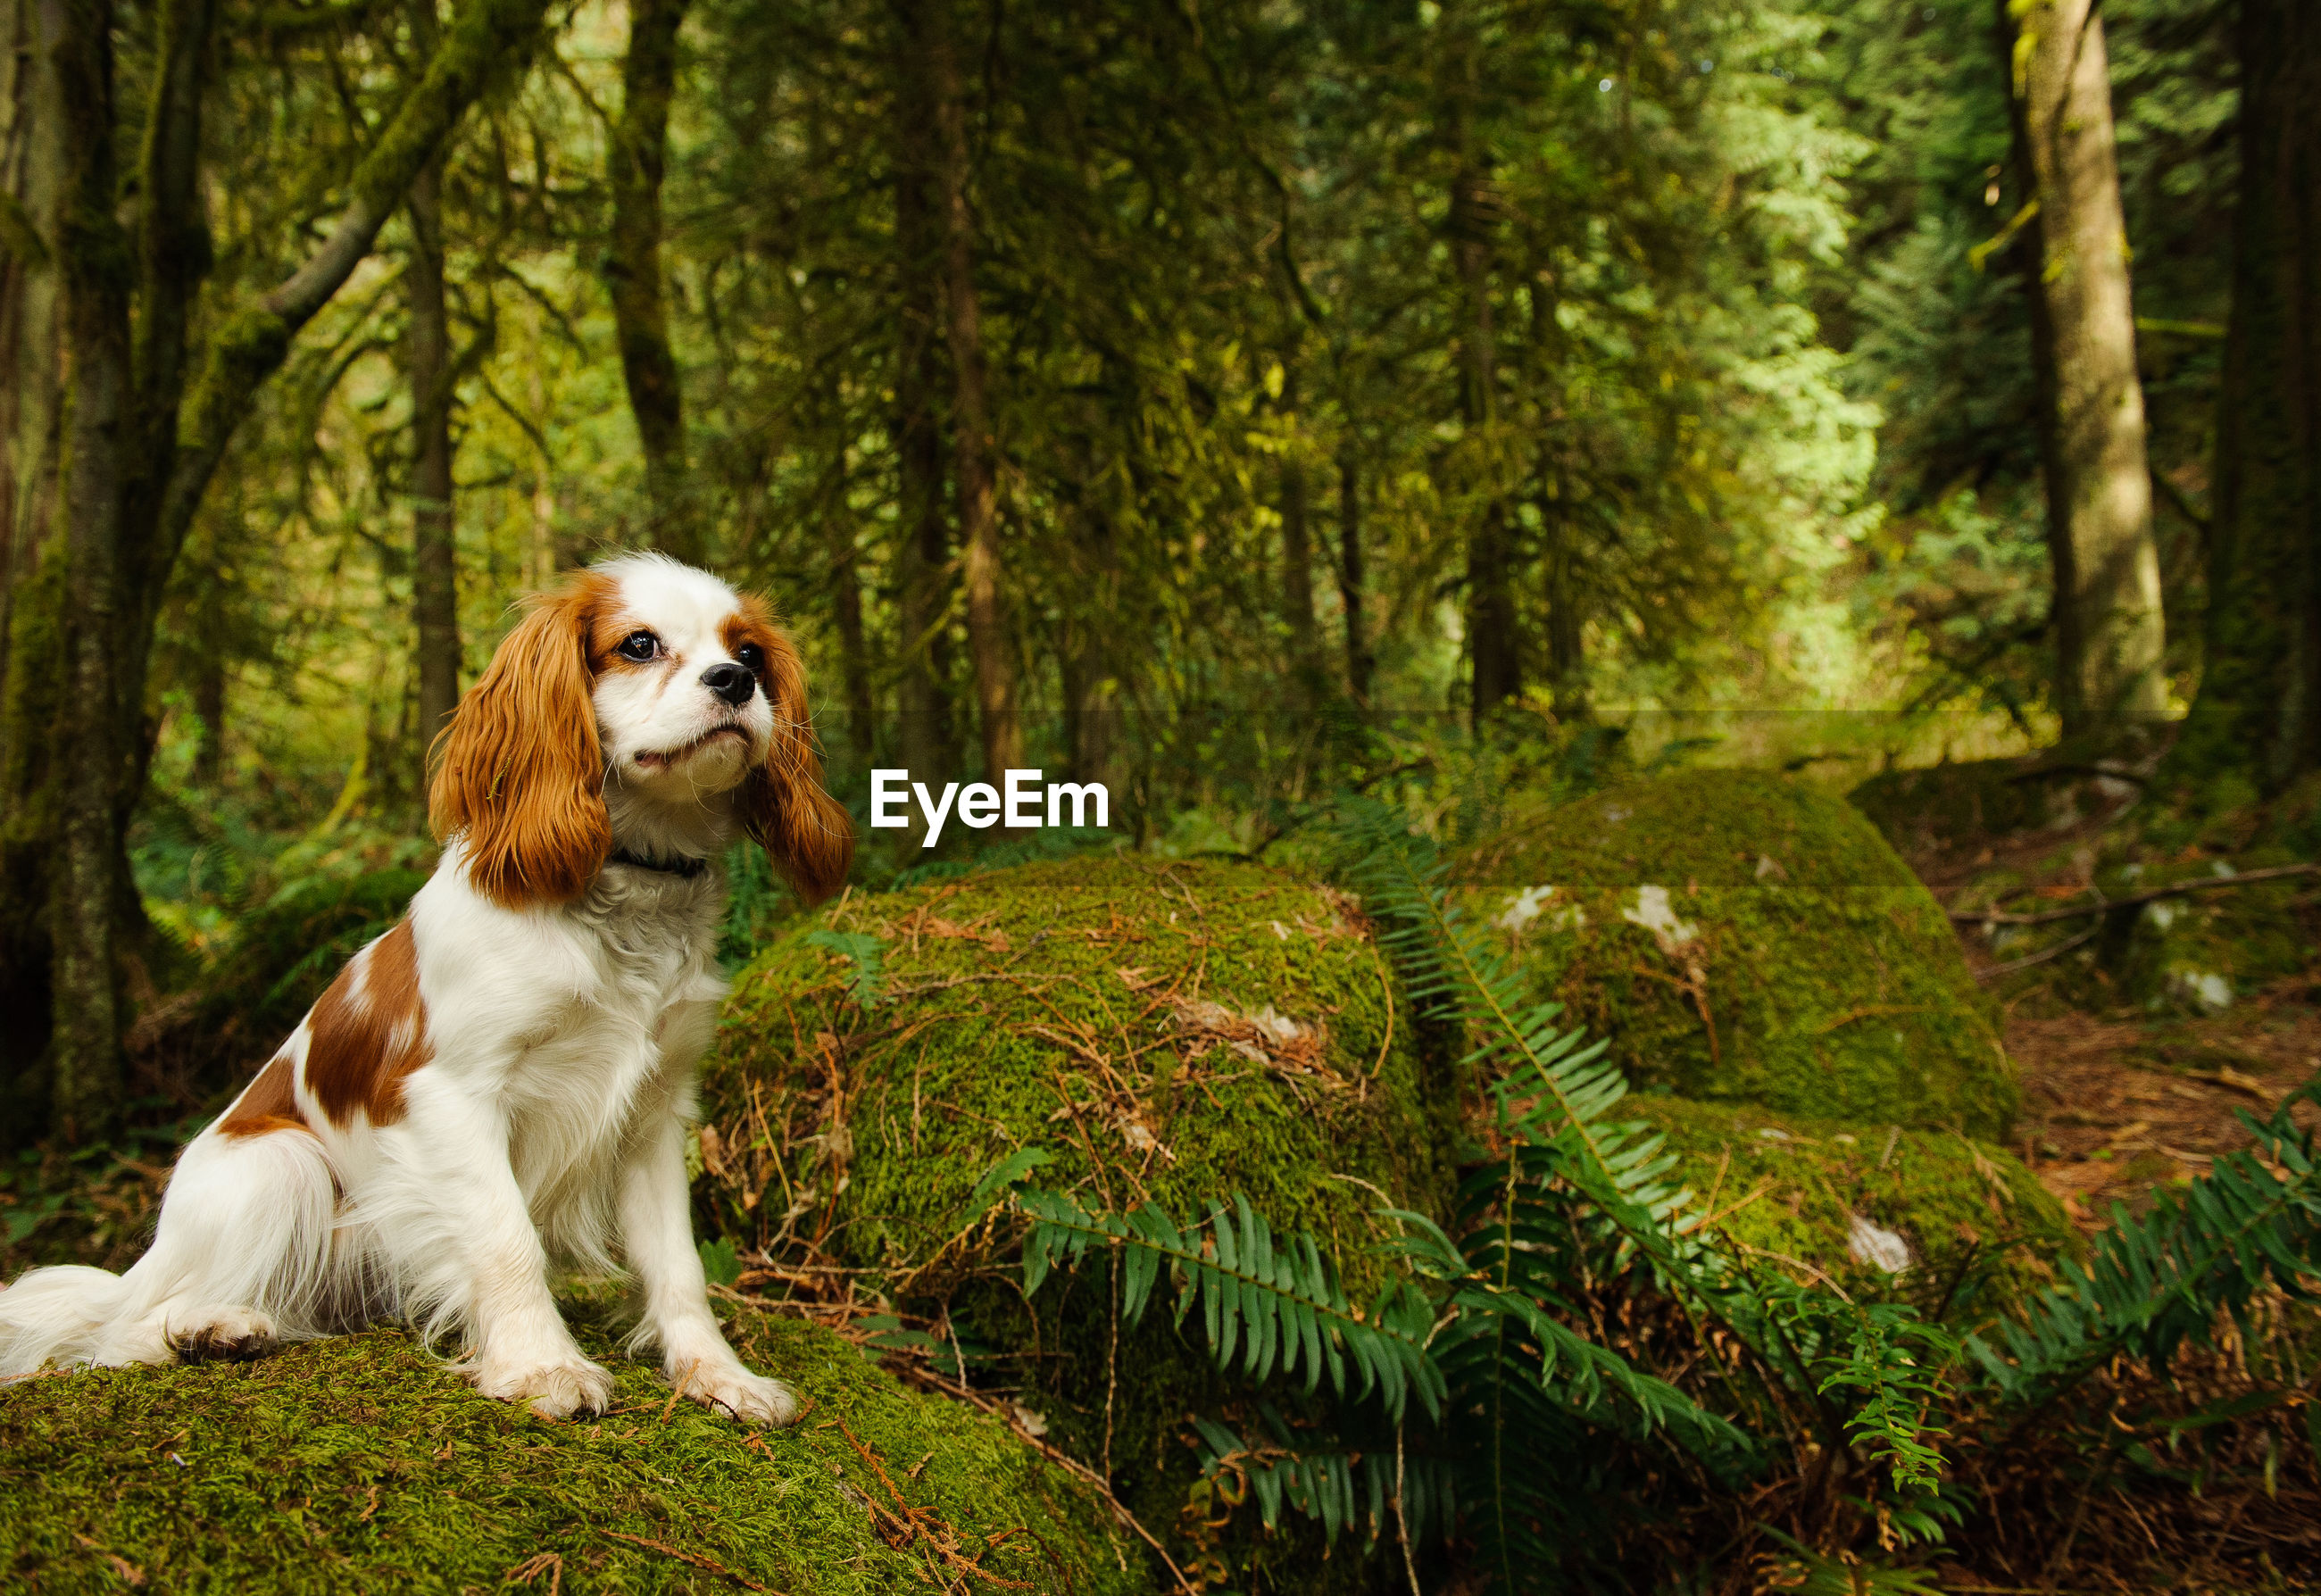 Close-up of cavalier king charles spaniel by trees in forest